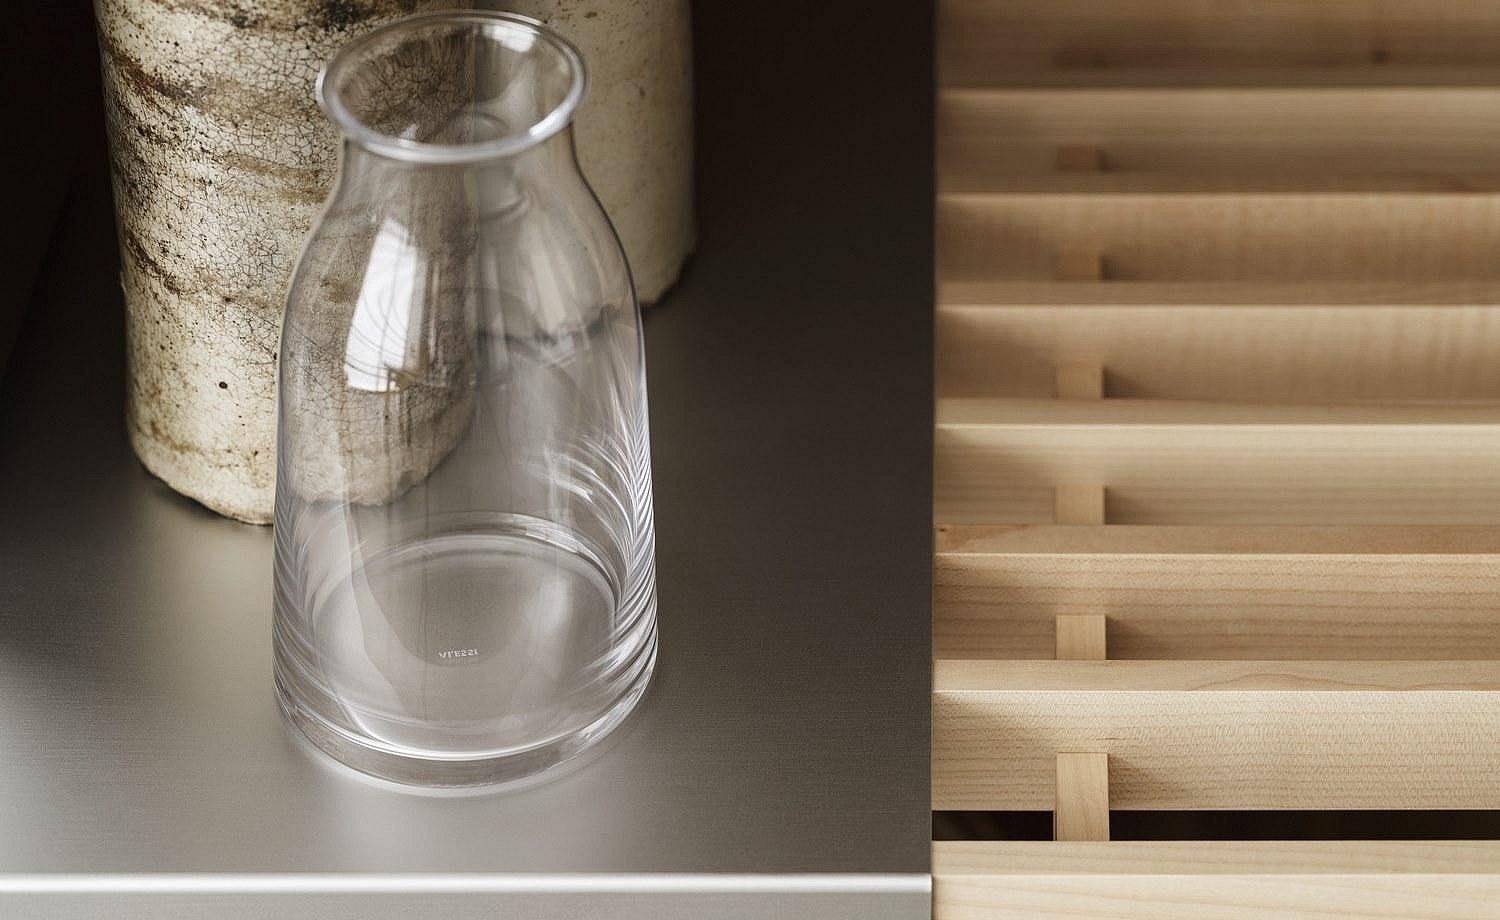 Contrast created with a combination of wooden gridded shelves and aluminum shelves